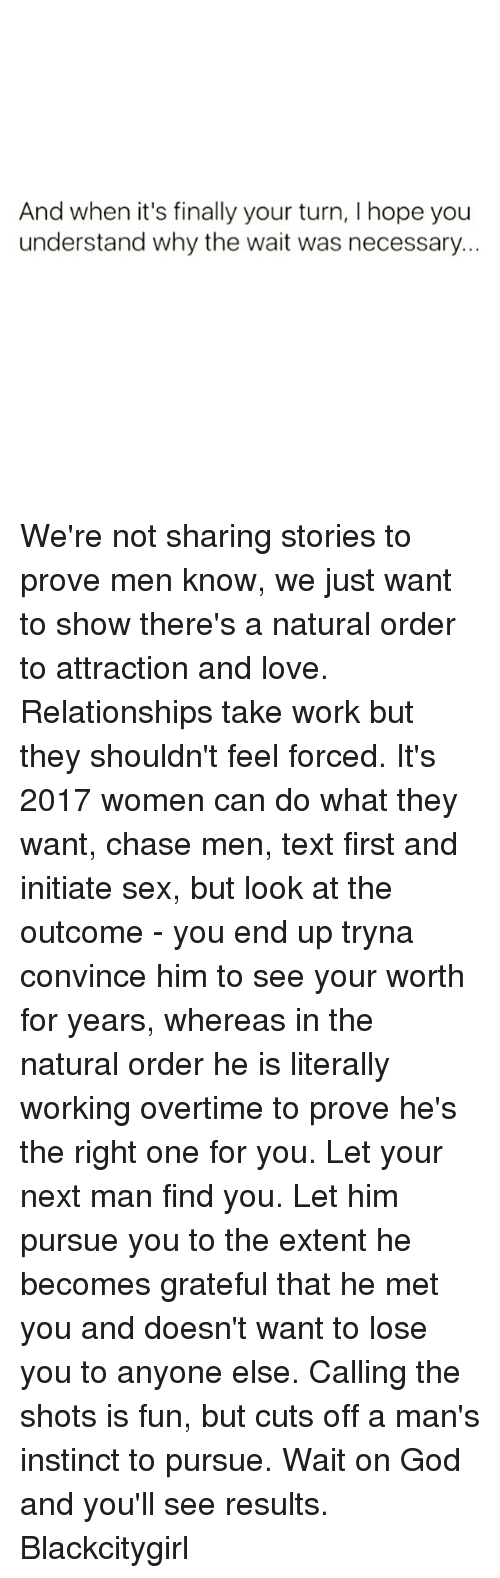 God, Love, and Memes: And when it's finally your turn, l hope you  understand why the wait was necessary. We're not sharing stories to prove men know, we just want to show there's a natural order to attraction and love. Relationships take work but they shouldn't feel forced. It's 2017 women can do what they want, chase men, text first and initiate sex, but look at the outcome - you end up tryna convince him to see your worth for years, whereas in the natural order he is literally working overtime to prove he's the right one for you. Let your next man find you. Let him pursue you to the extent he becomes grateful that he met you and doesn't want to lose you to anyone else. Calling the shots is fun, but cuts off a man's instinct to pursue. Wait on God and you'll see results. Blackcitygirl